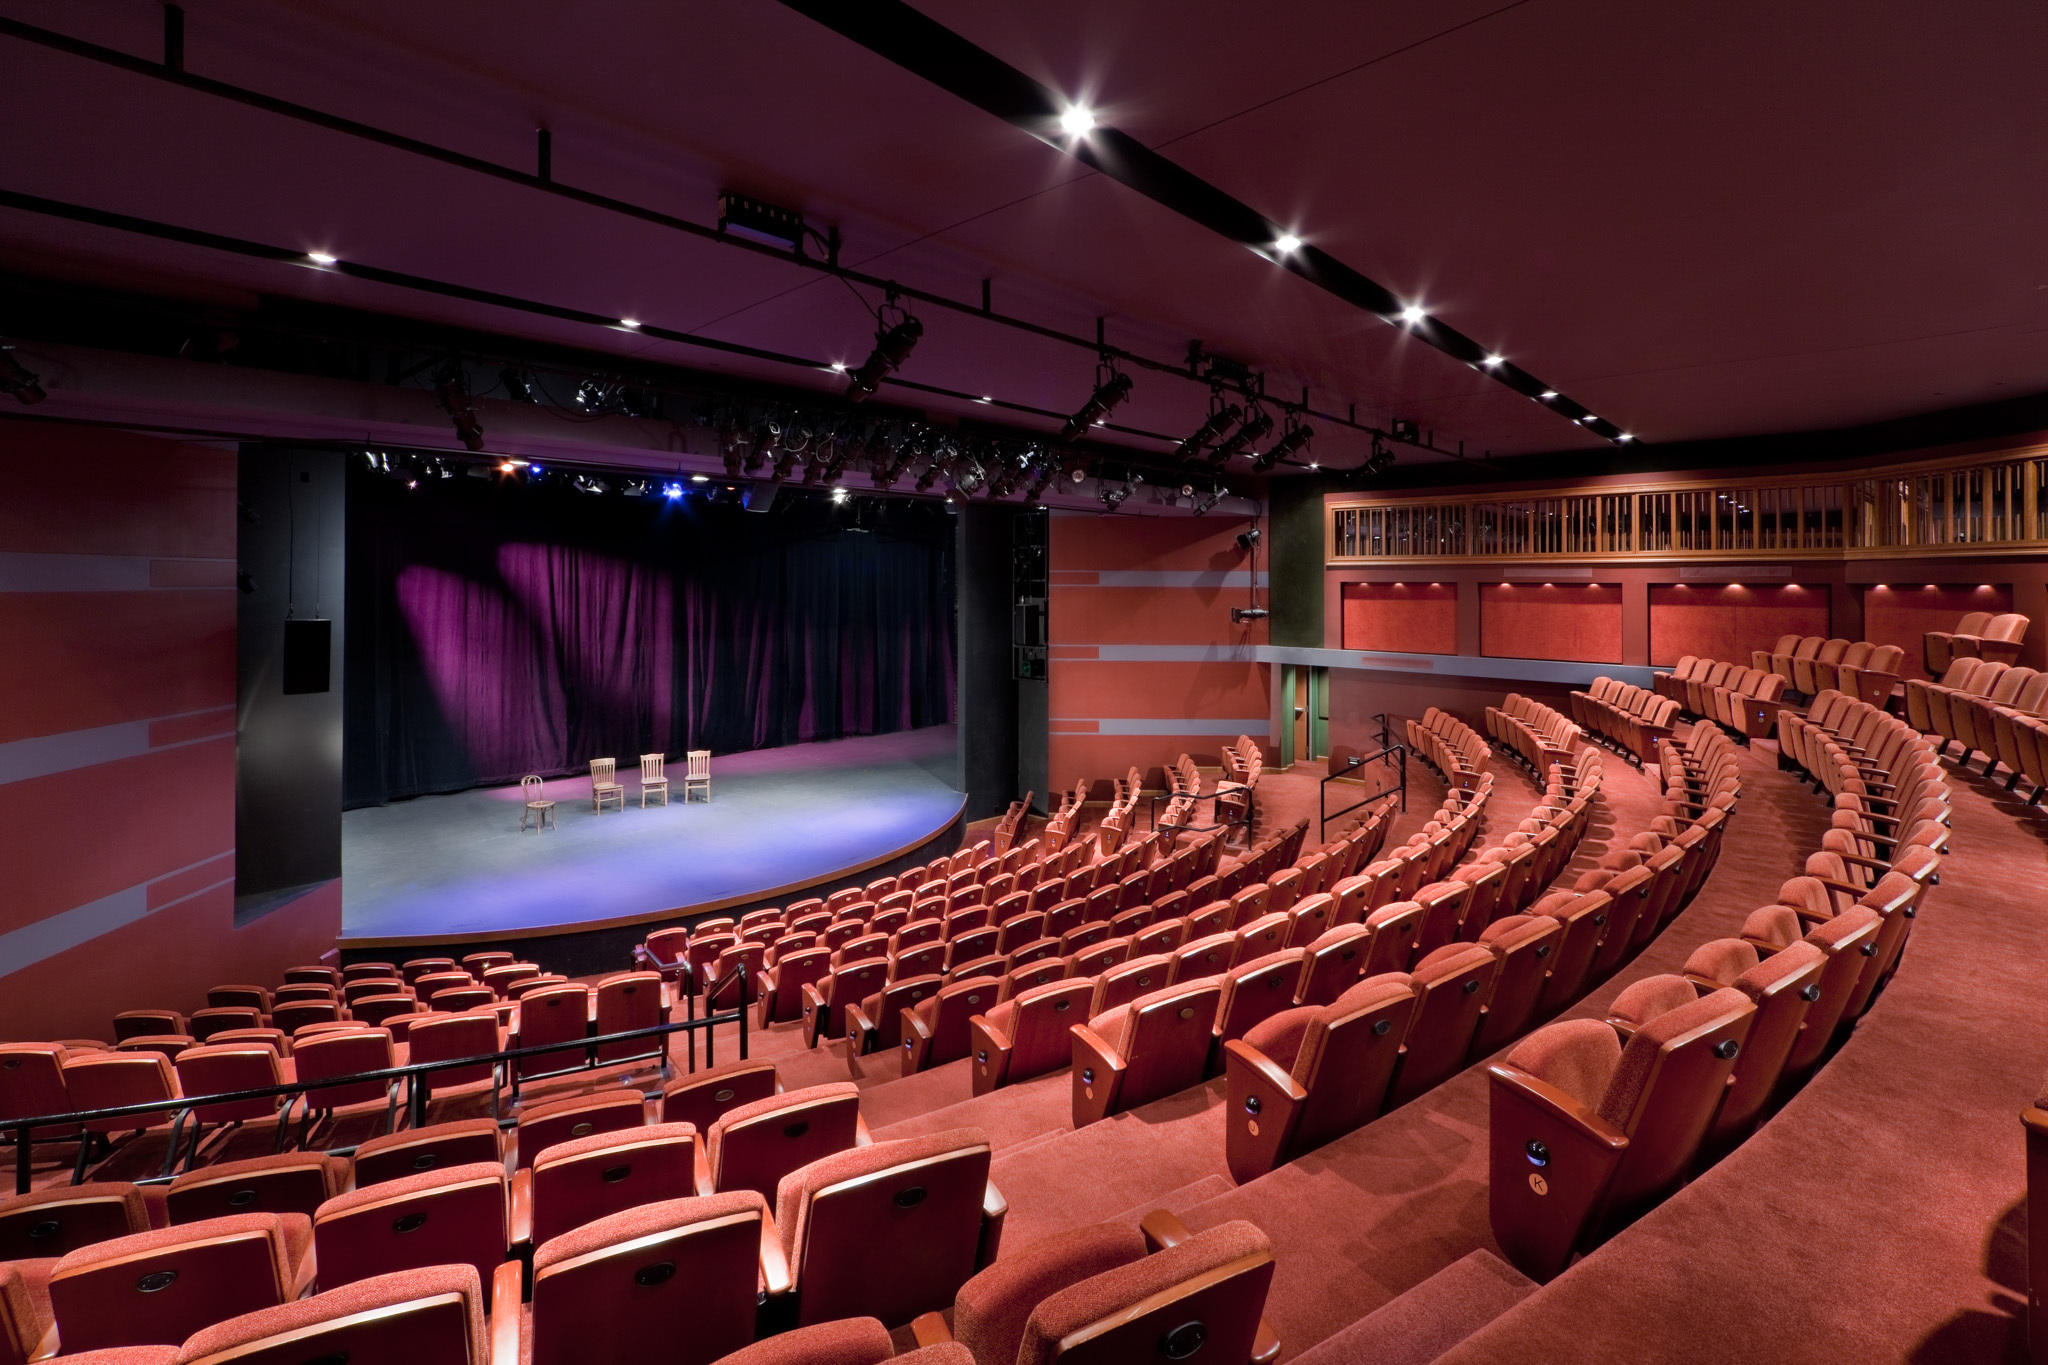 Home Theater Curtains - An Essential Decoration for Any Theater